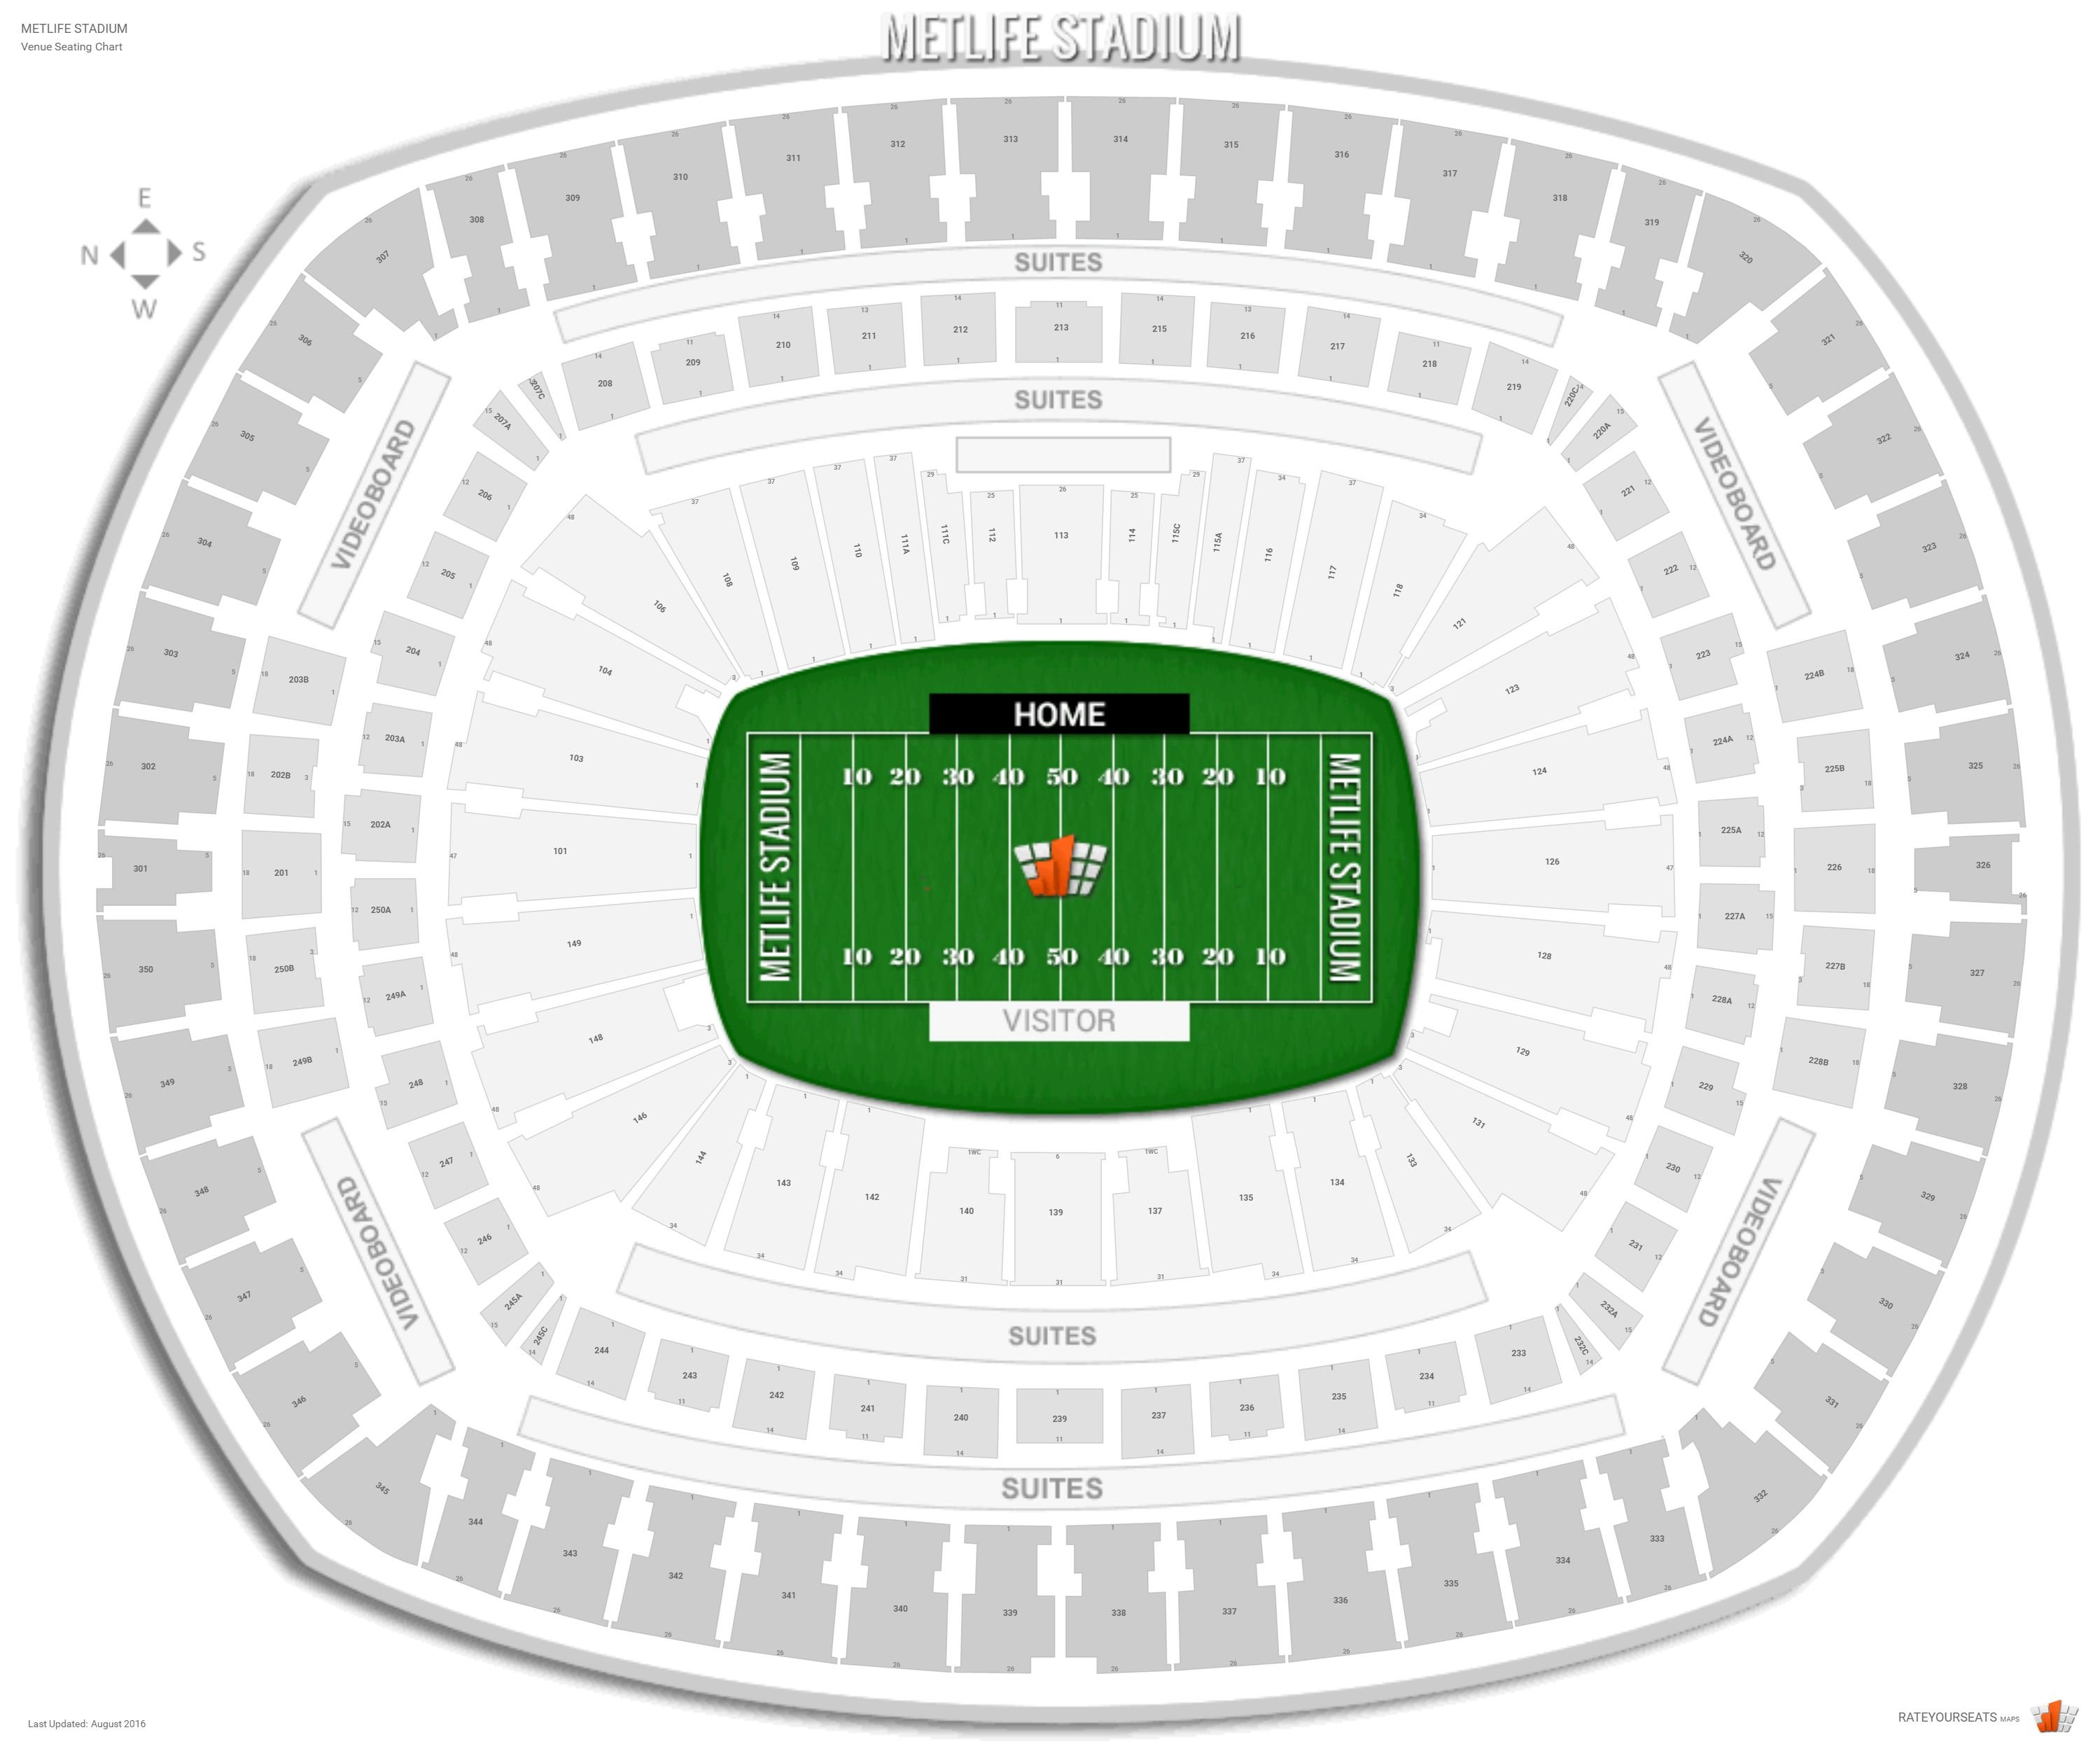 Metlife Stadium Seating Chart With Row Numbers